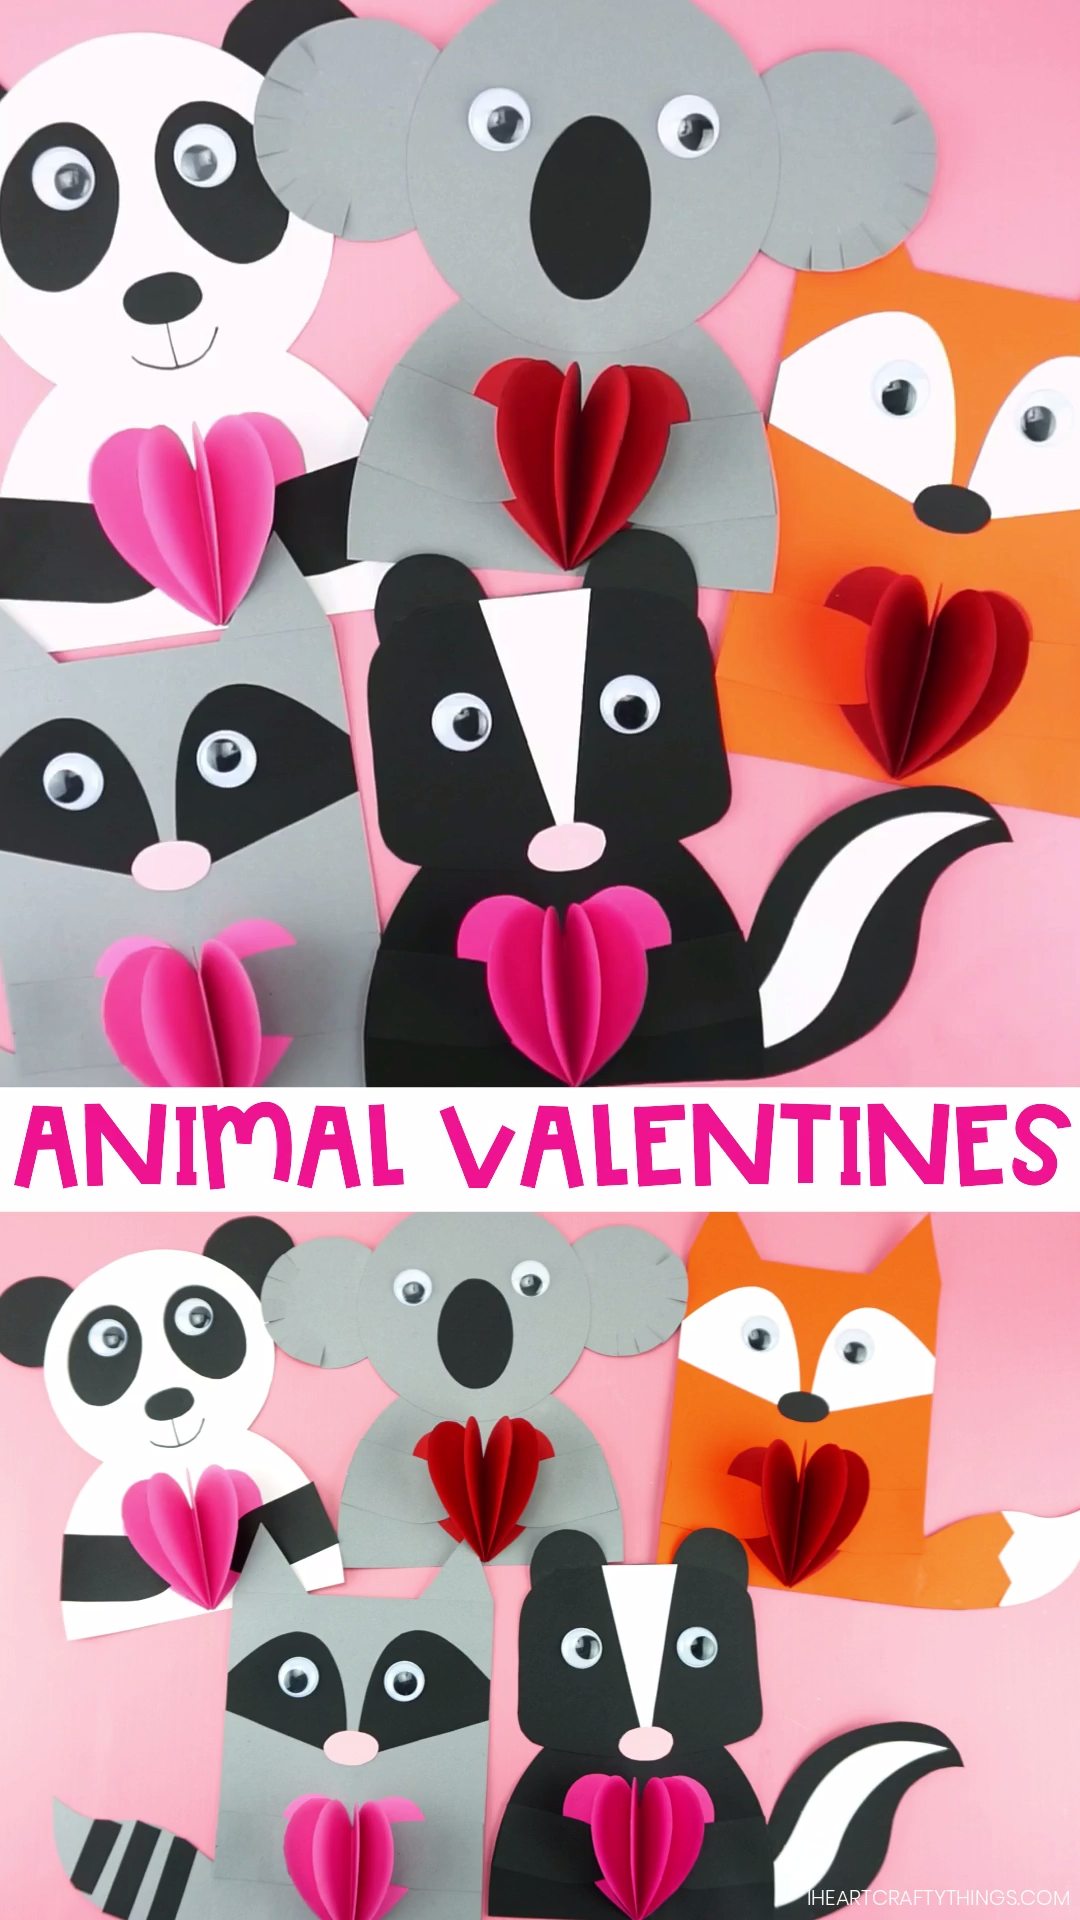 Adorable Valentine Animal Crafts for Kids -Koala, Panda, Skunk, Fox and Raccoon